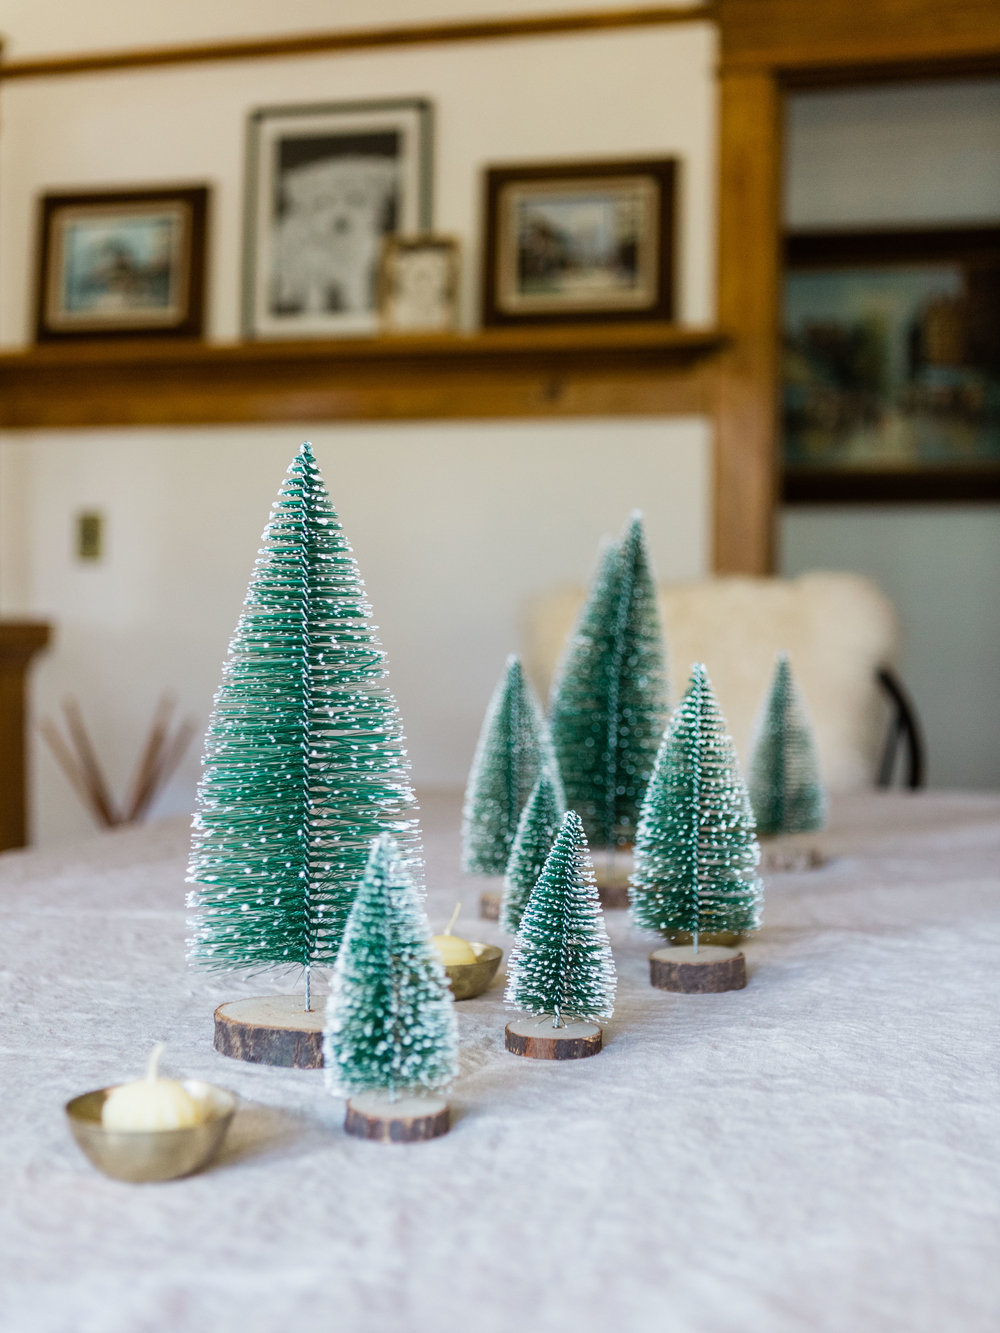 Bottle brush Christmas trees as winter centerpiece from Foraged Home